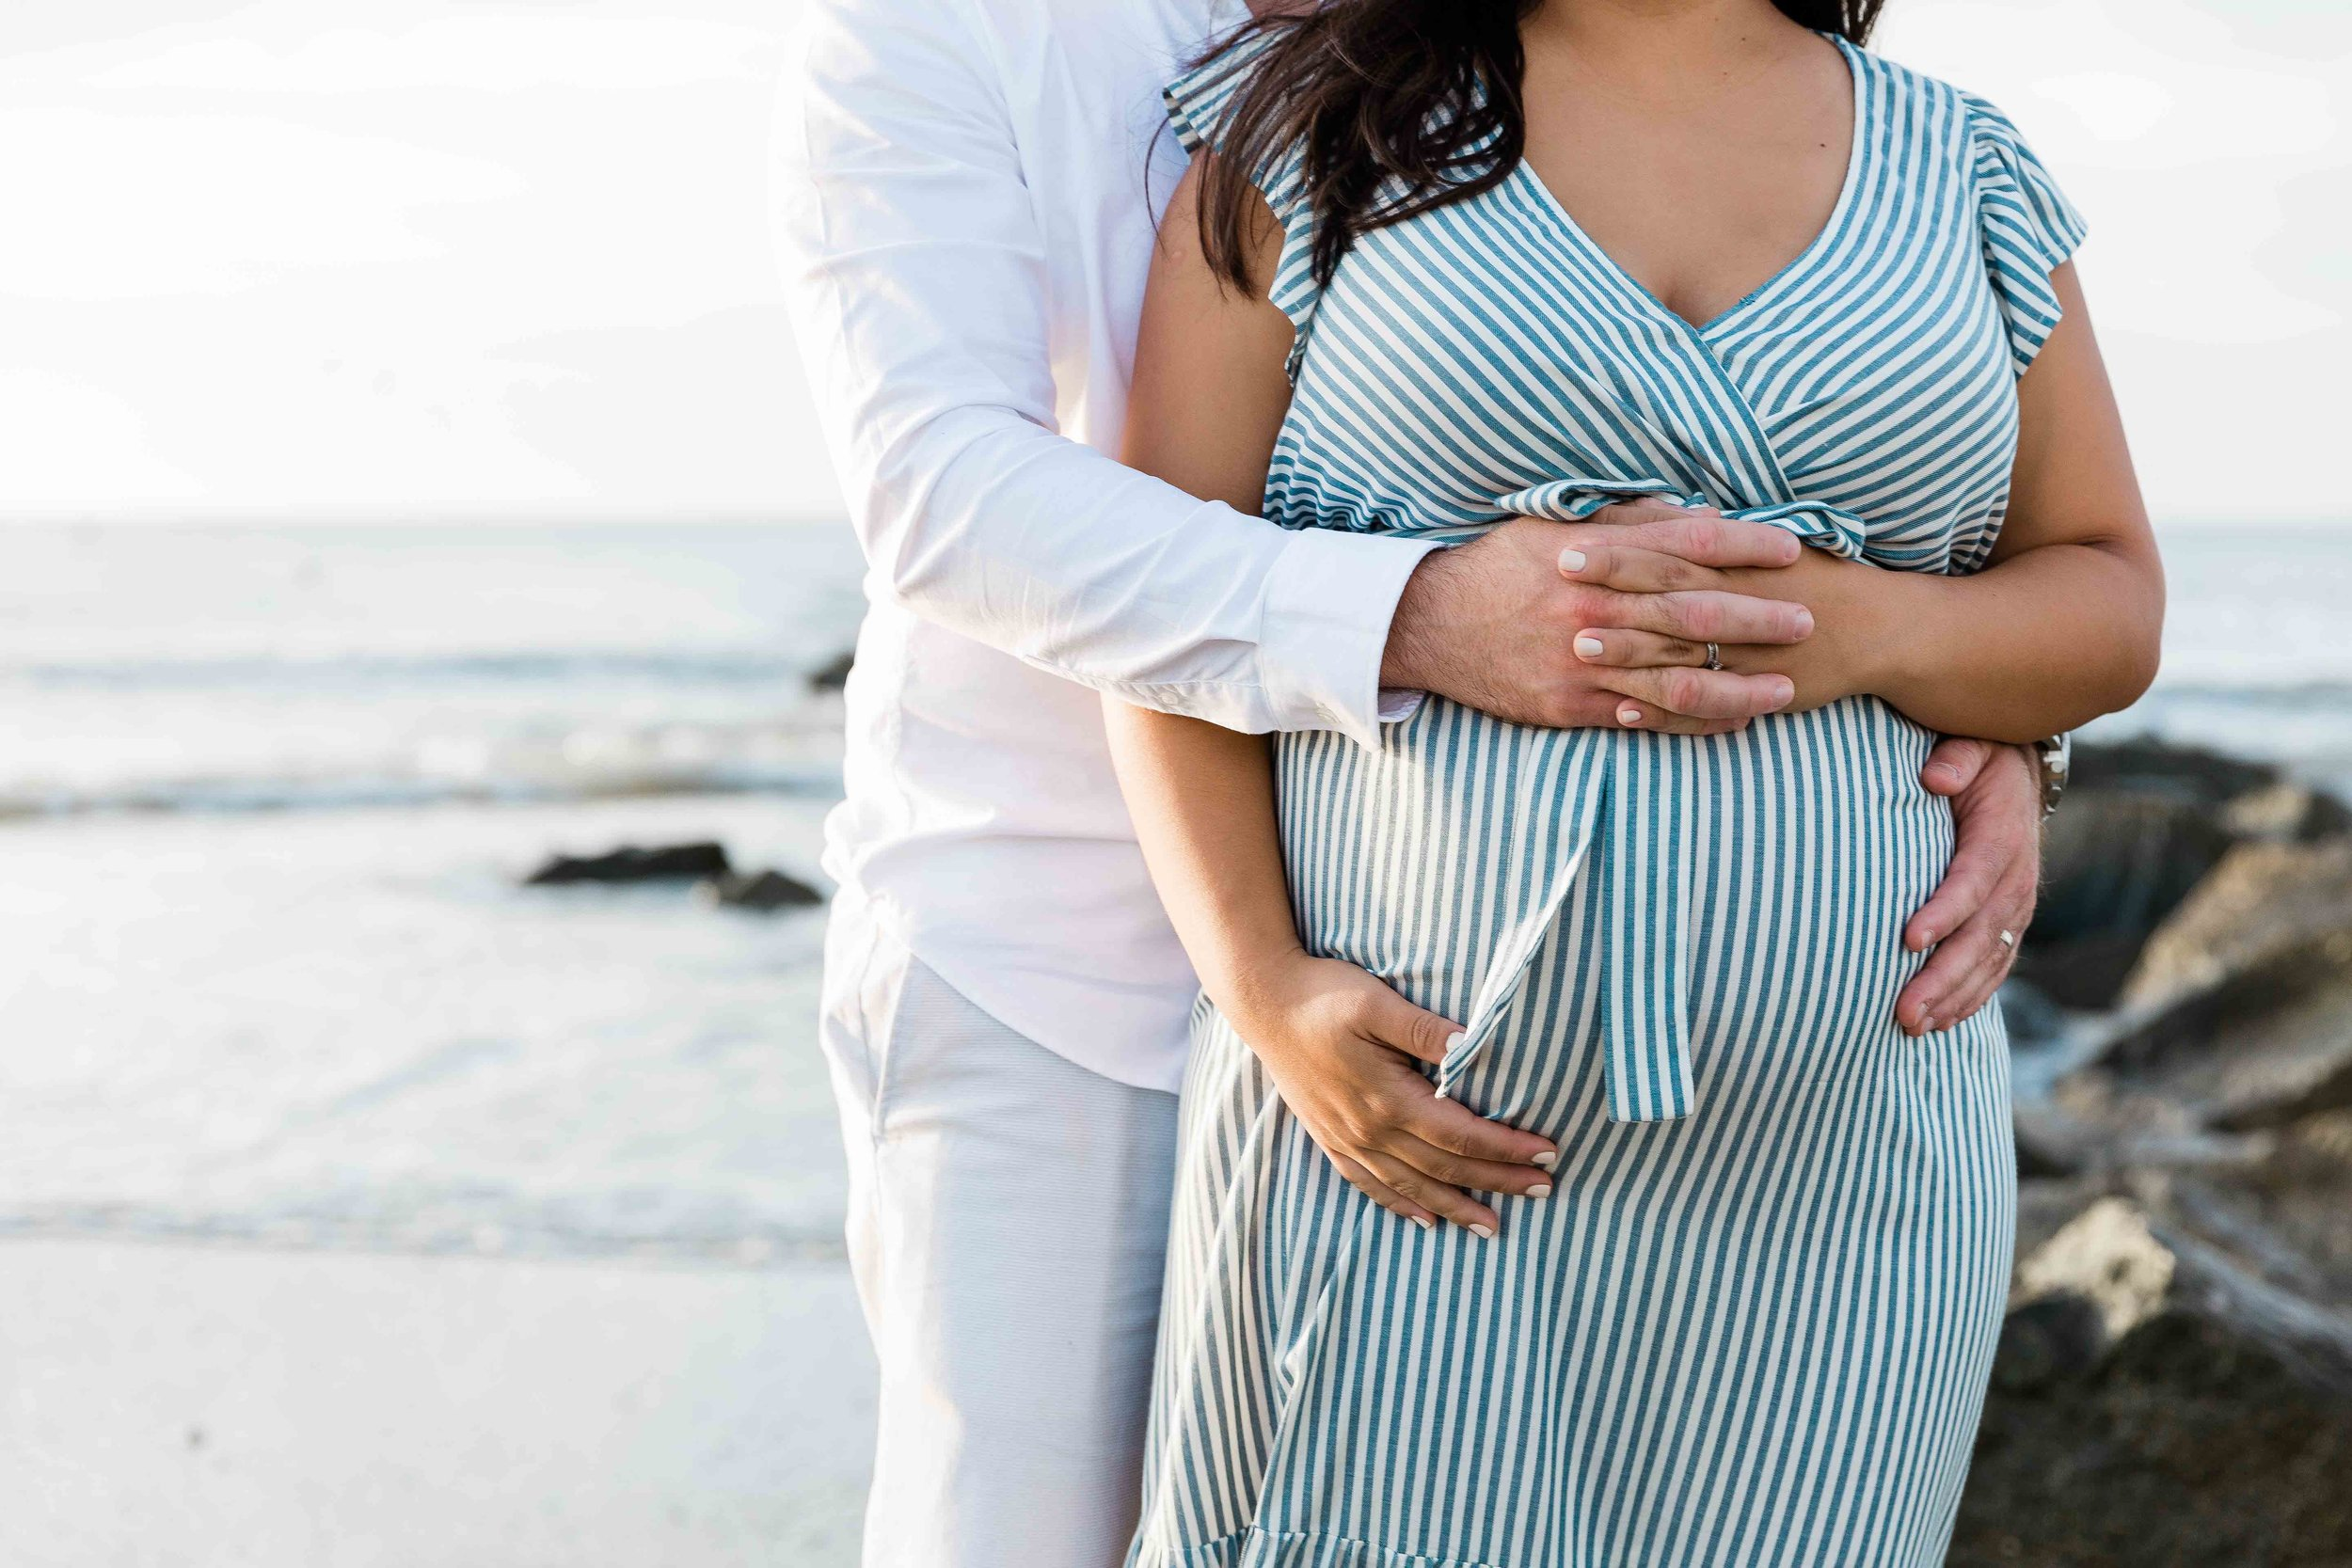 AJ0A7027Tybee Island and Pulaski Square Maternity Session05.jpg